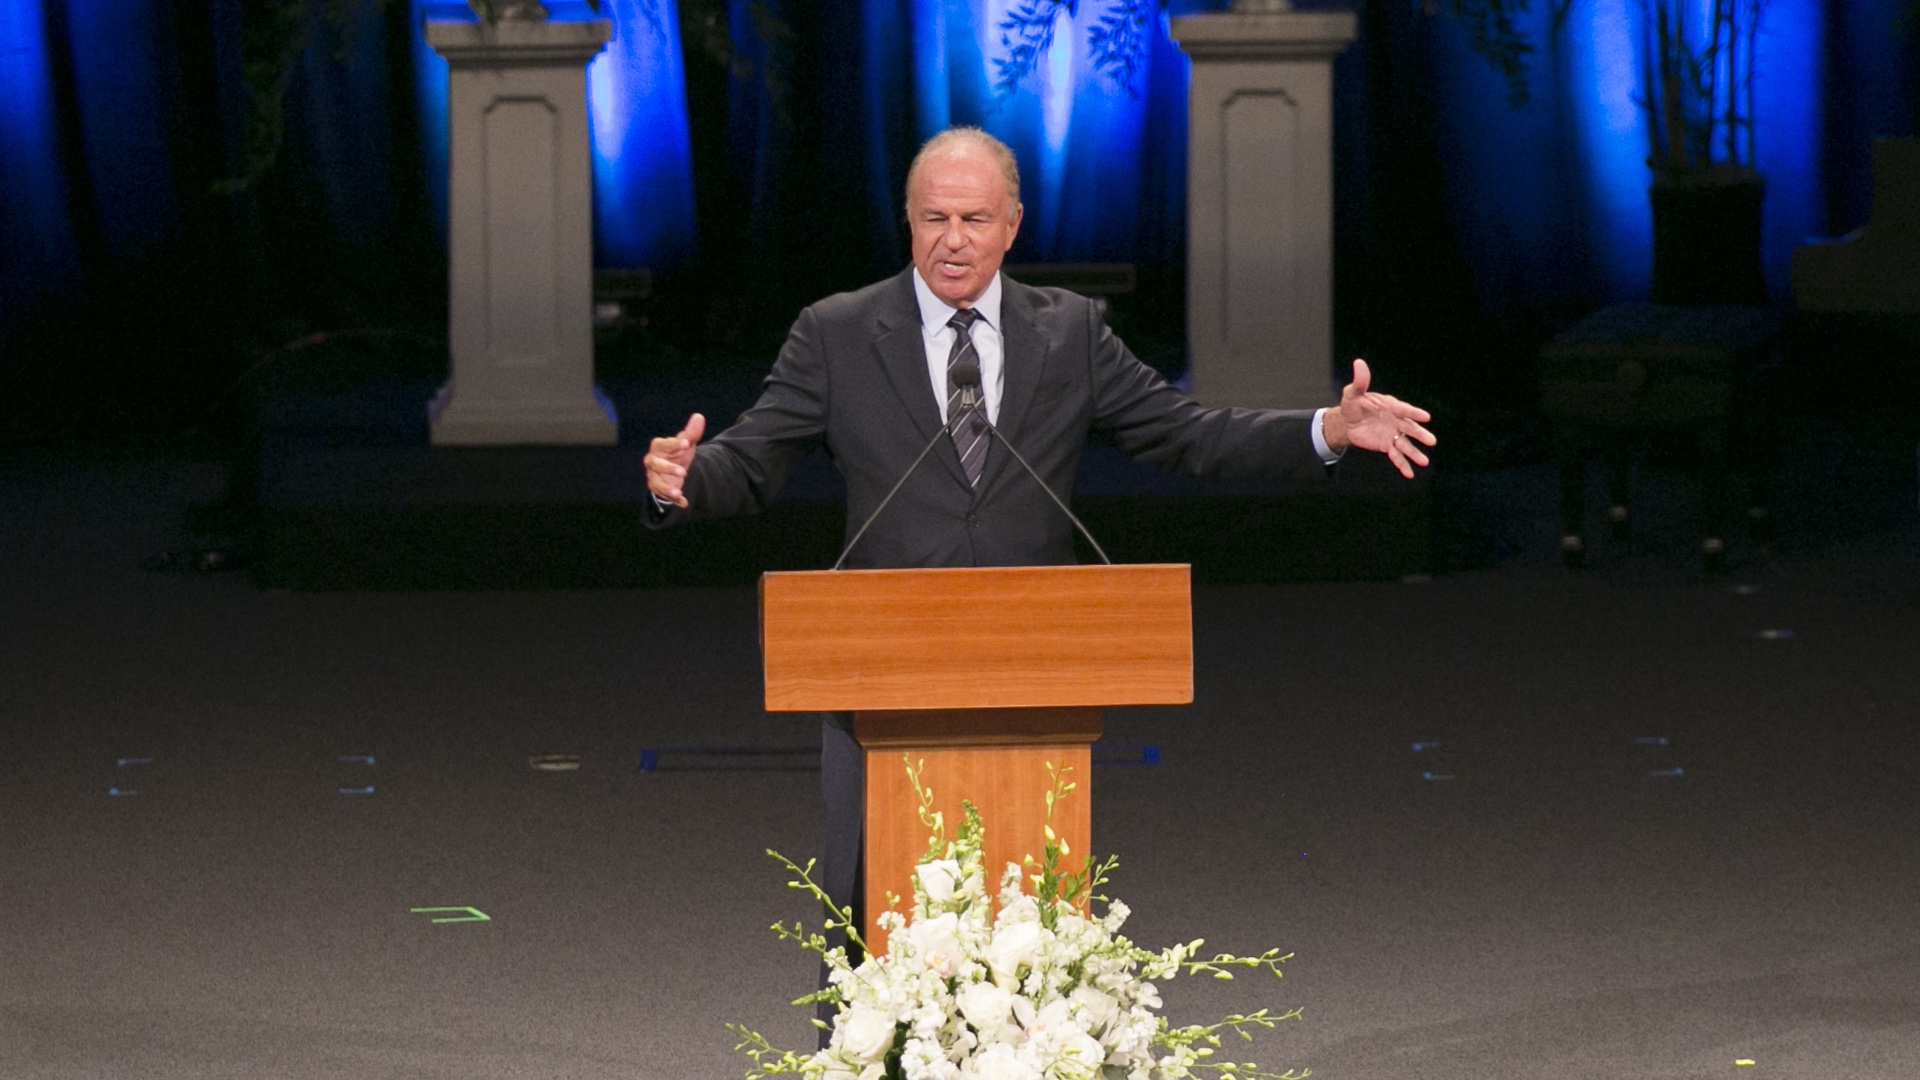 Former Arizona Attorney General Grant Woods speaking at a service for former U.S. Sen. John McCain on Aug. 30, 2018.